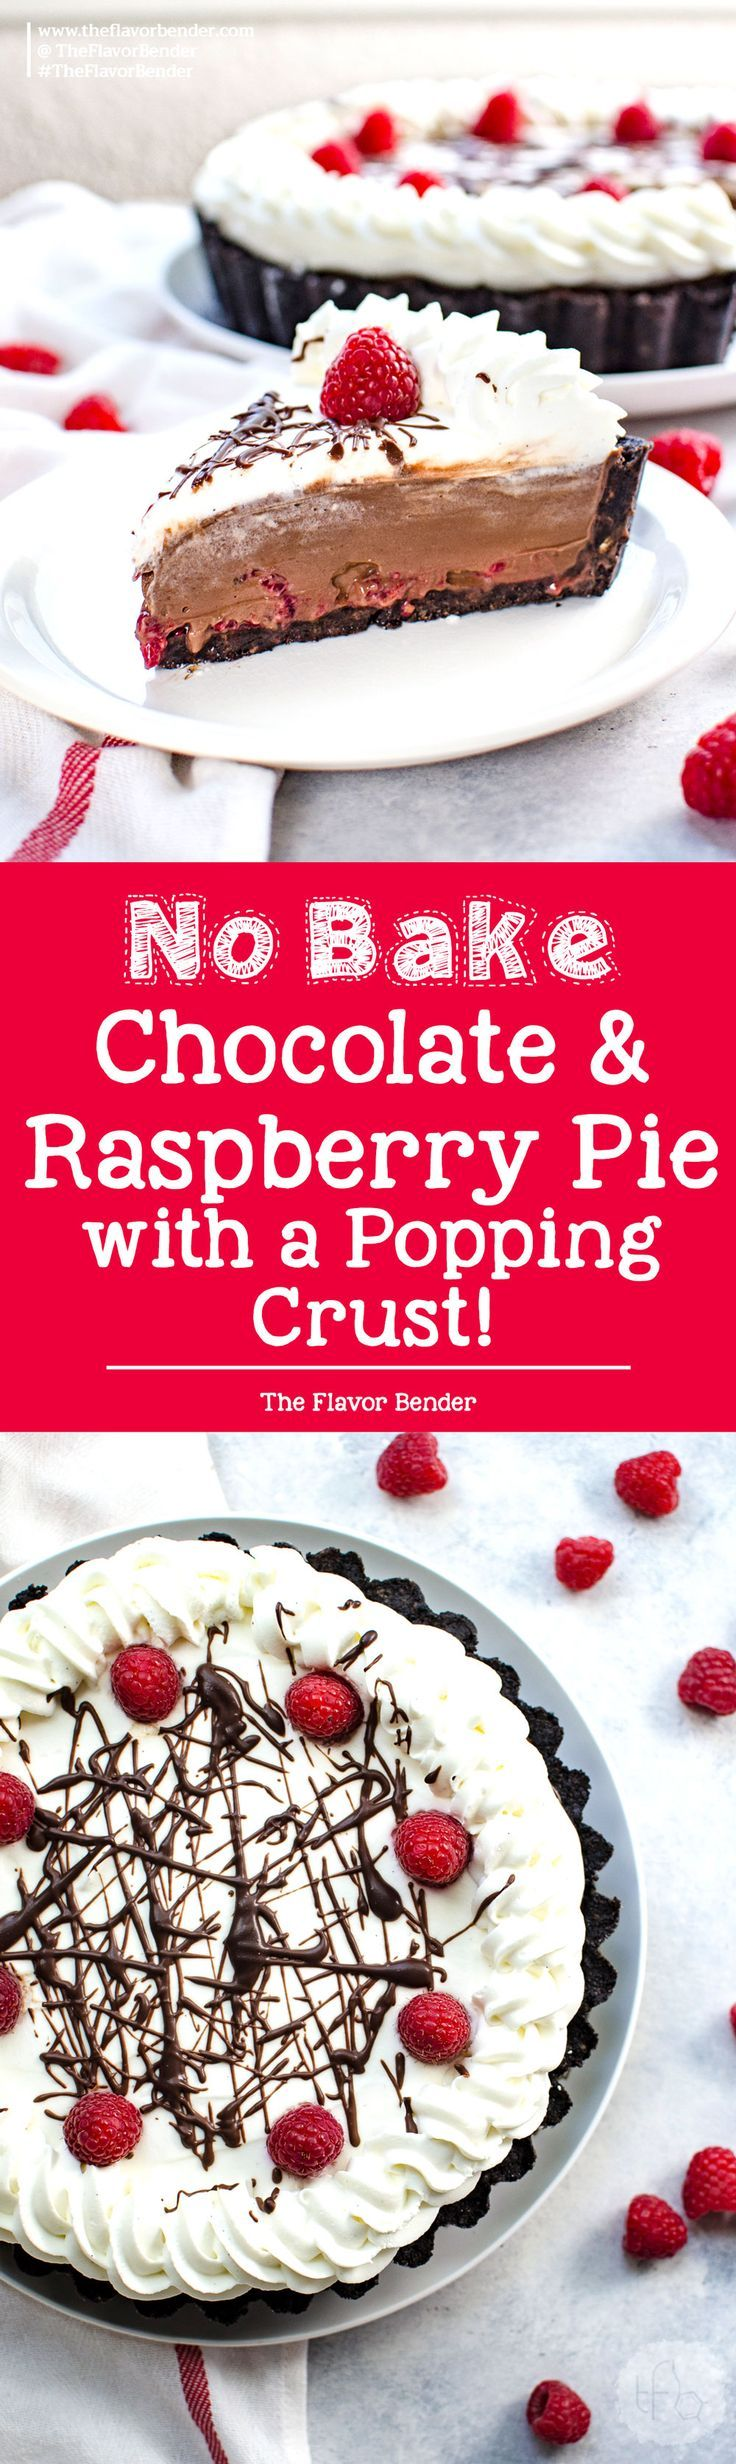 Popping No Bake Chocolate Raspberry Pie - An irresistibly creamy, smooth, and fool-proof dessert with a decadent chocolate pudding filling, with fresh raspberries and a pop rock cookie crust! via @theflavorbender